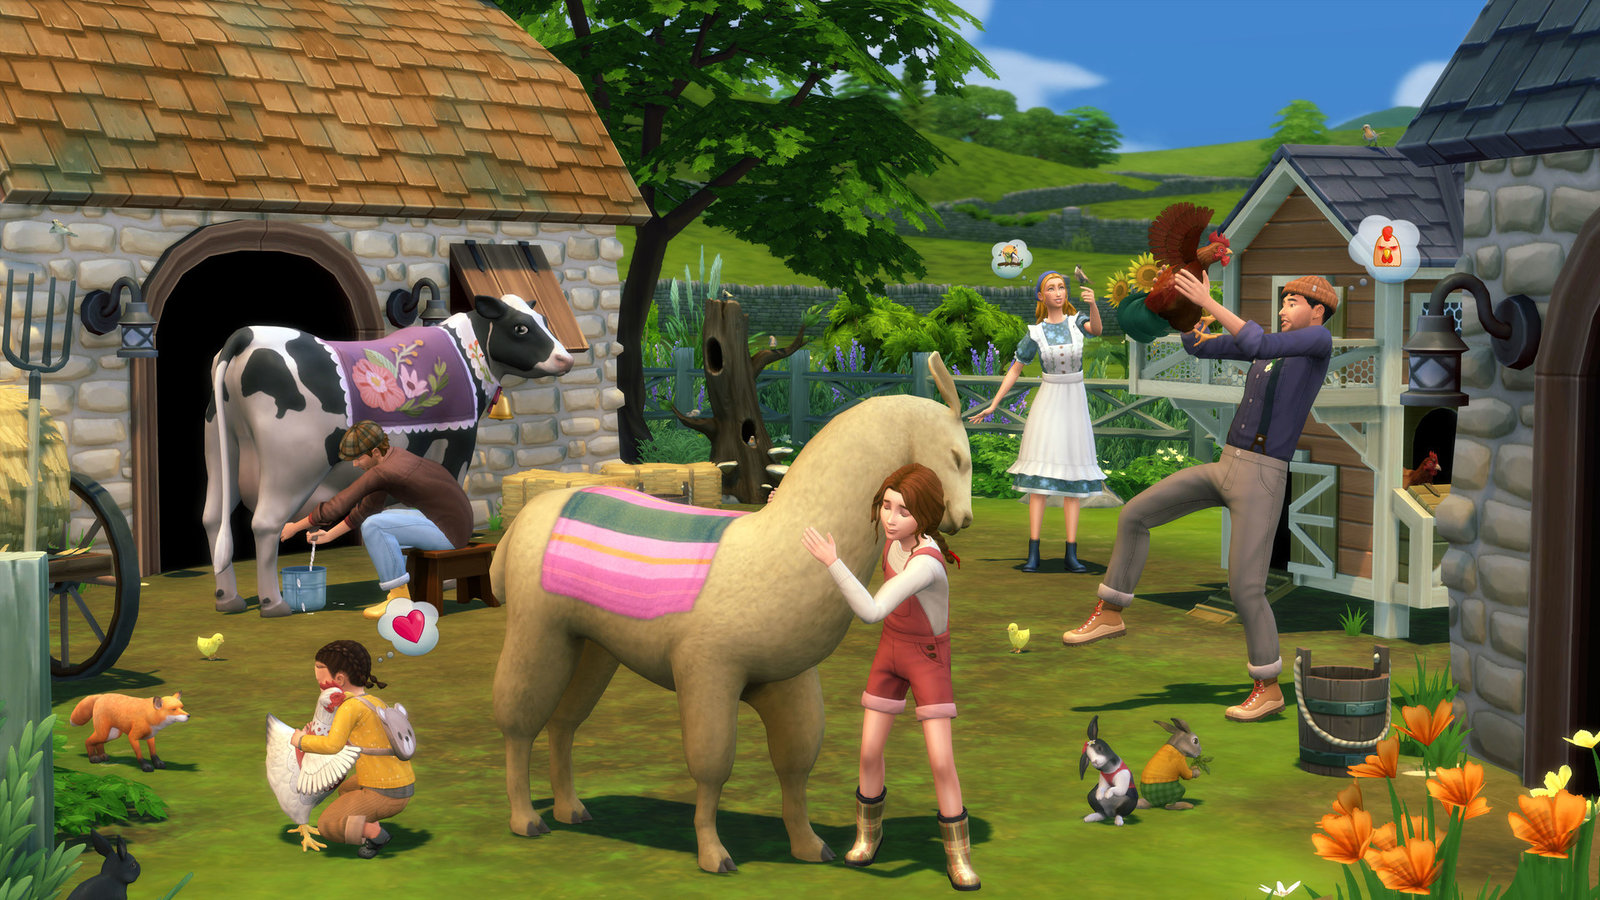 The Sims 4: Cottage Living image 1